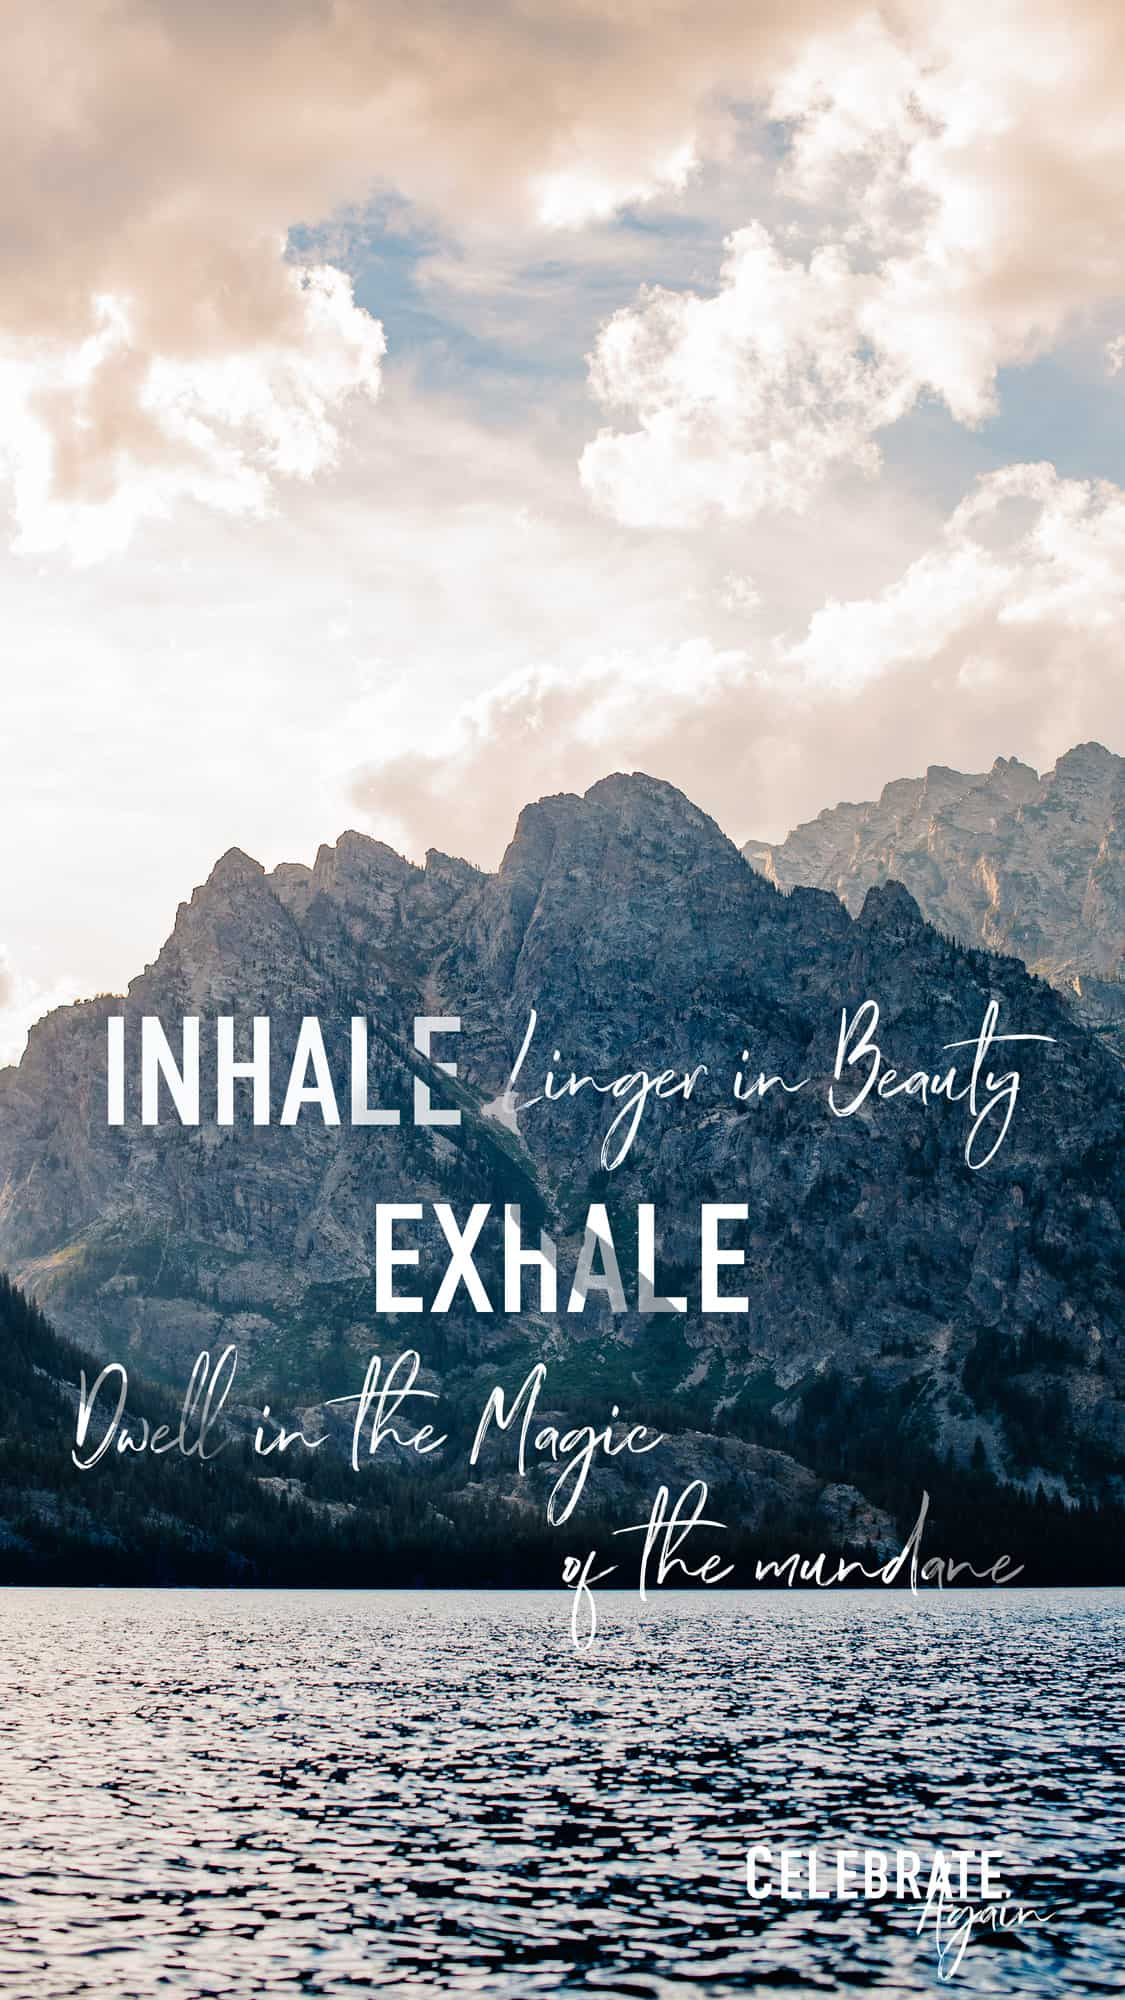 """view of an alpine lake mountain side with text that says """"Inhale linger in the beauty exhale dwell in the magic of the mundane"""""""